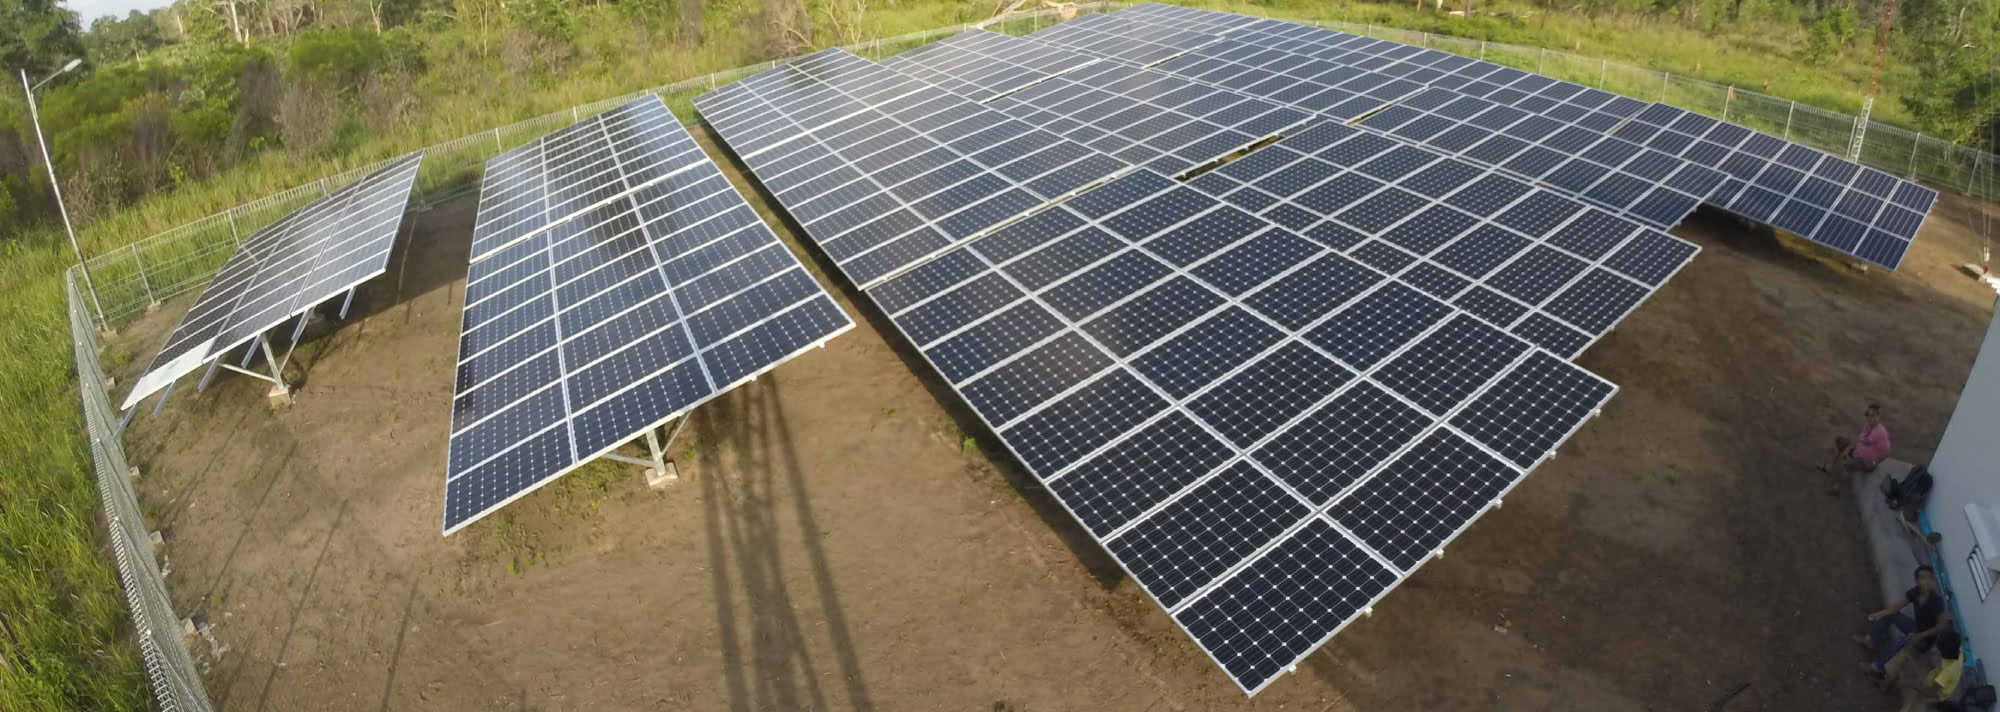 Hybrid installations combining solar PV system - PROINSO